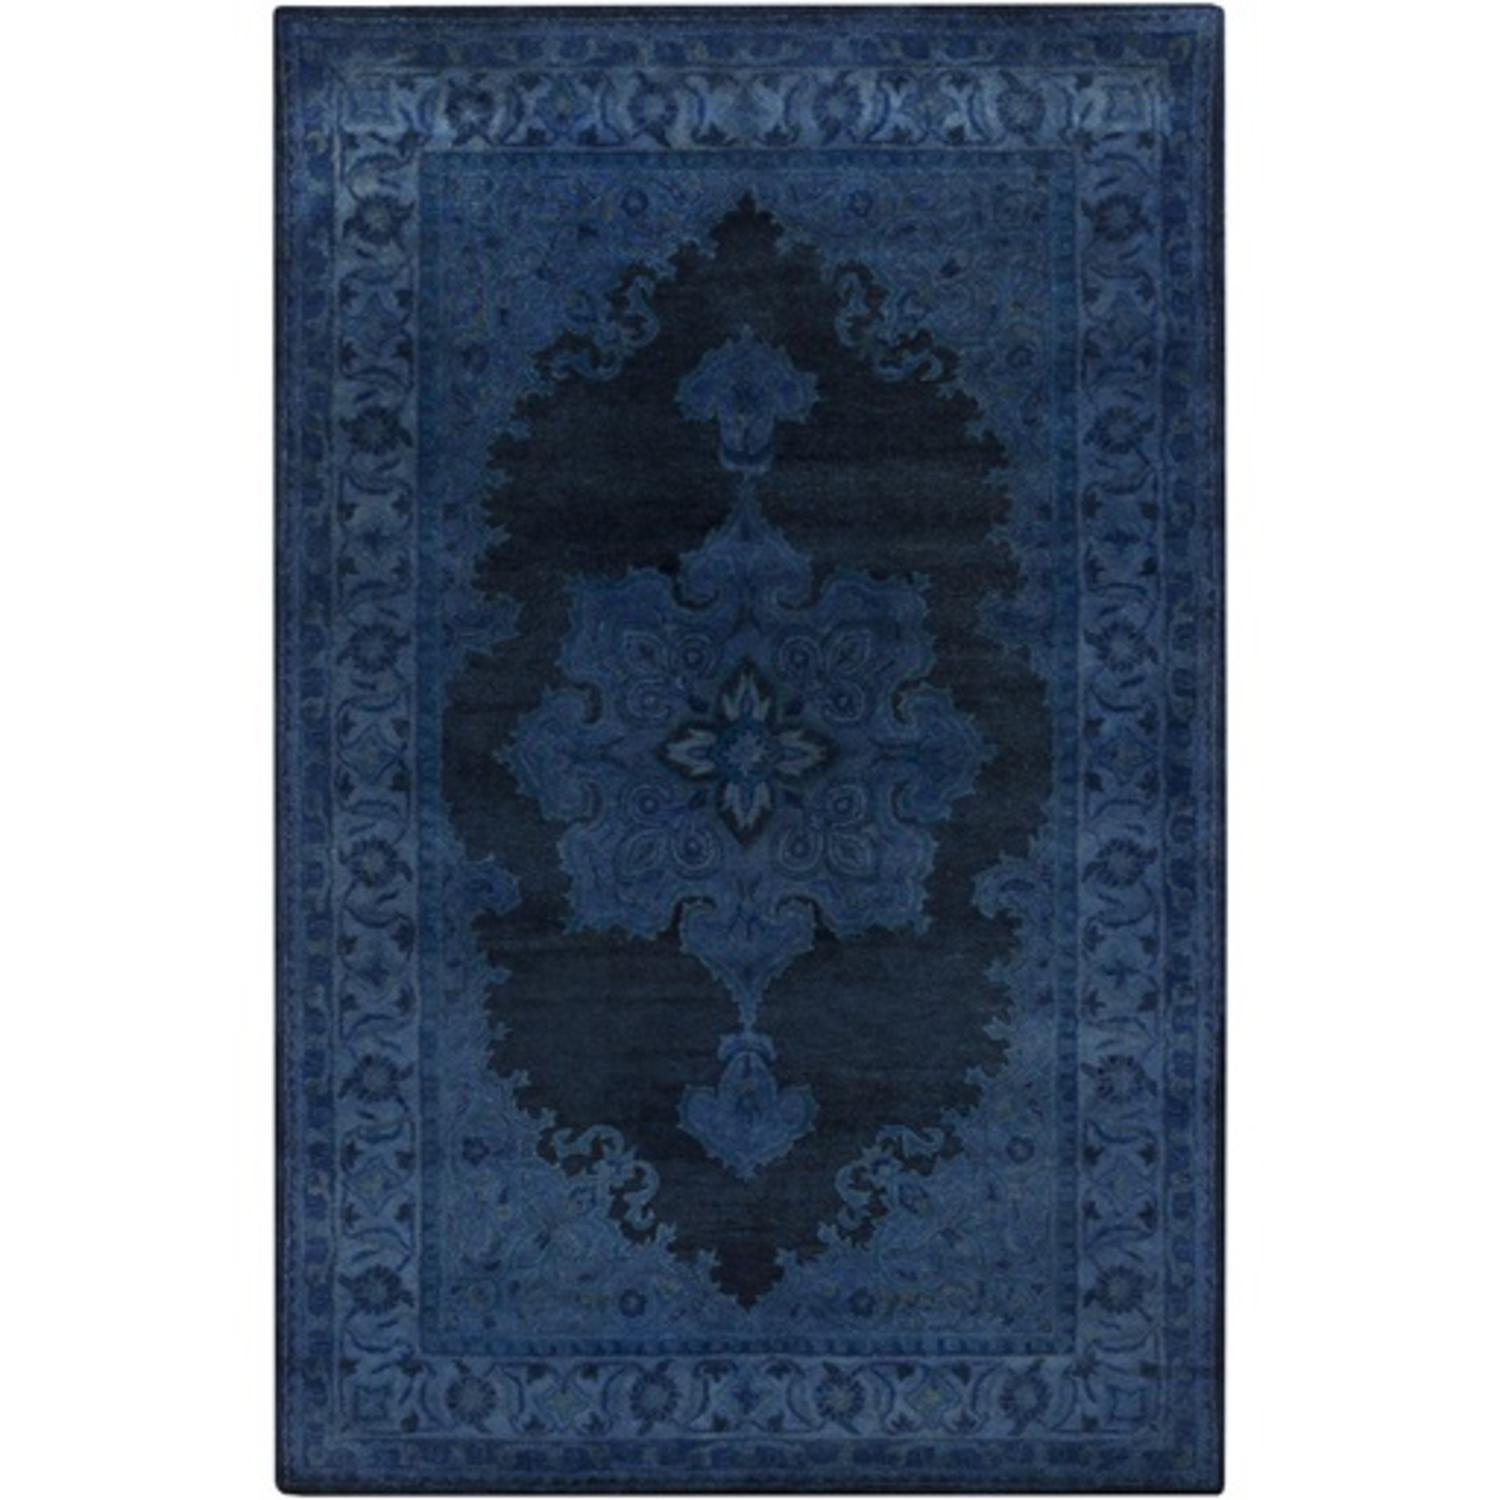 3.25' x 5.25' Cycladic Fantasy Steel Blue and Navy Hand Tufted Area Throw Rug